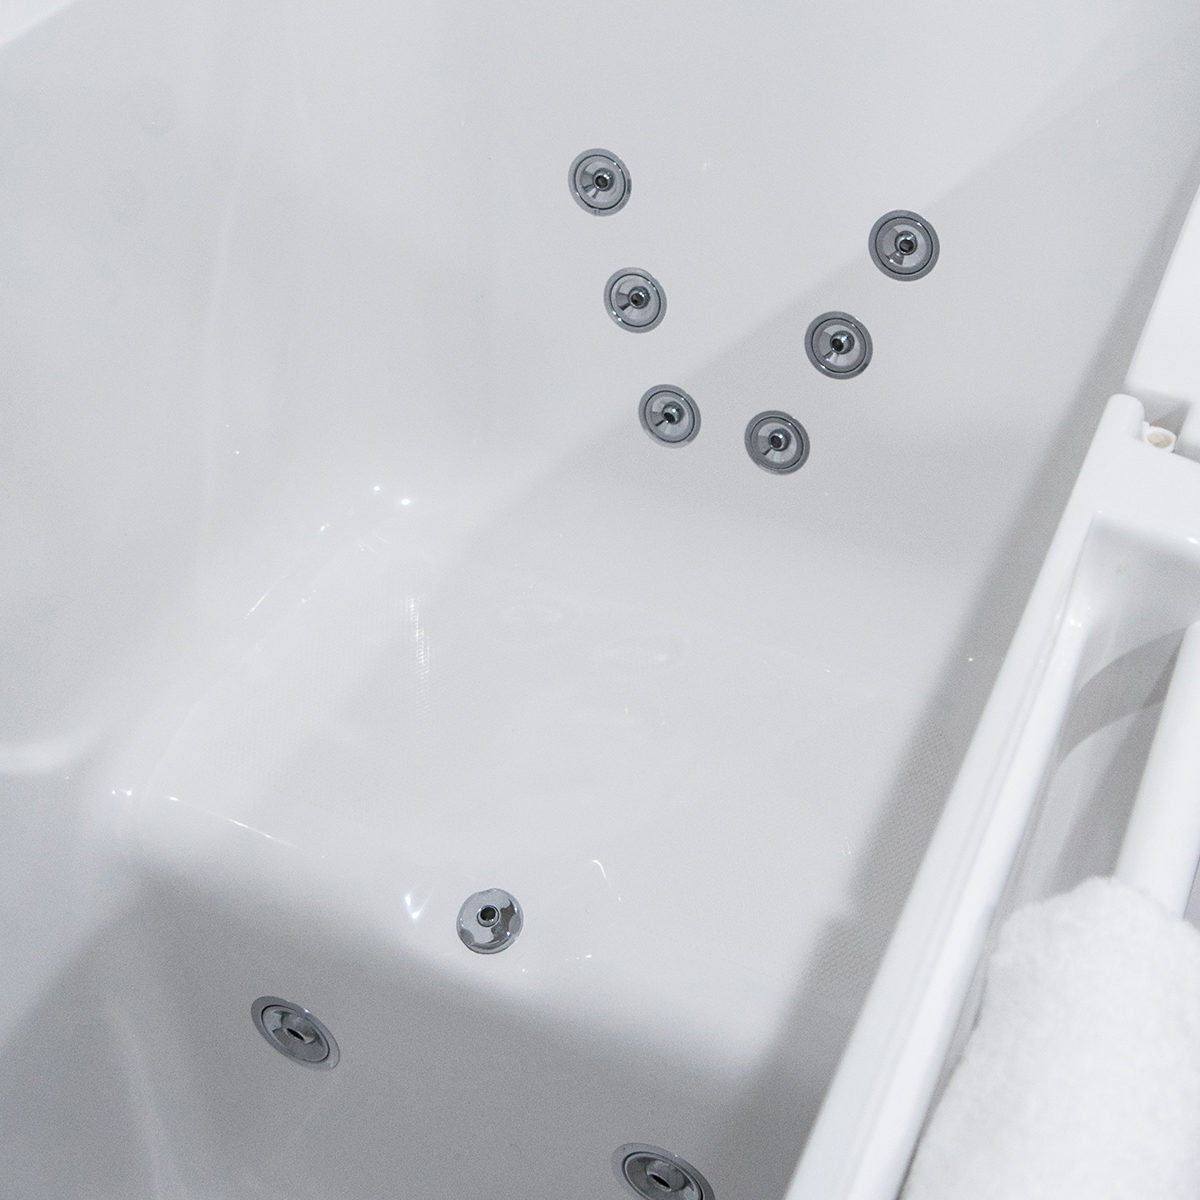 A Walk-in Tubs seat's pressure jets